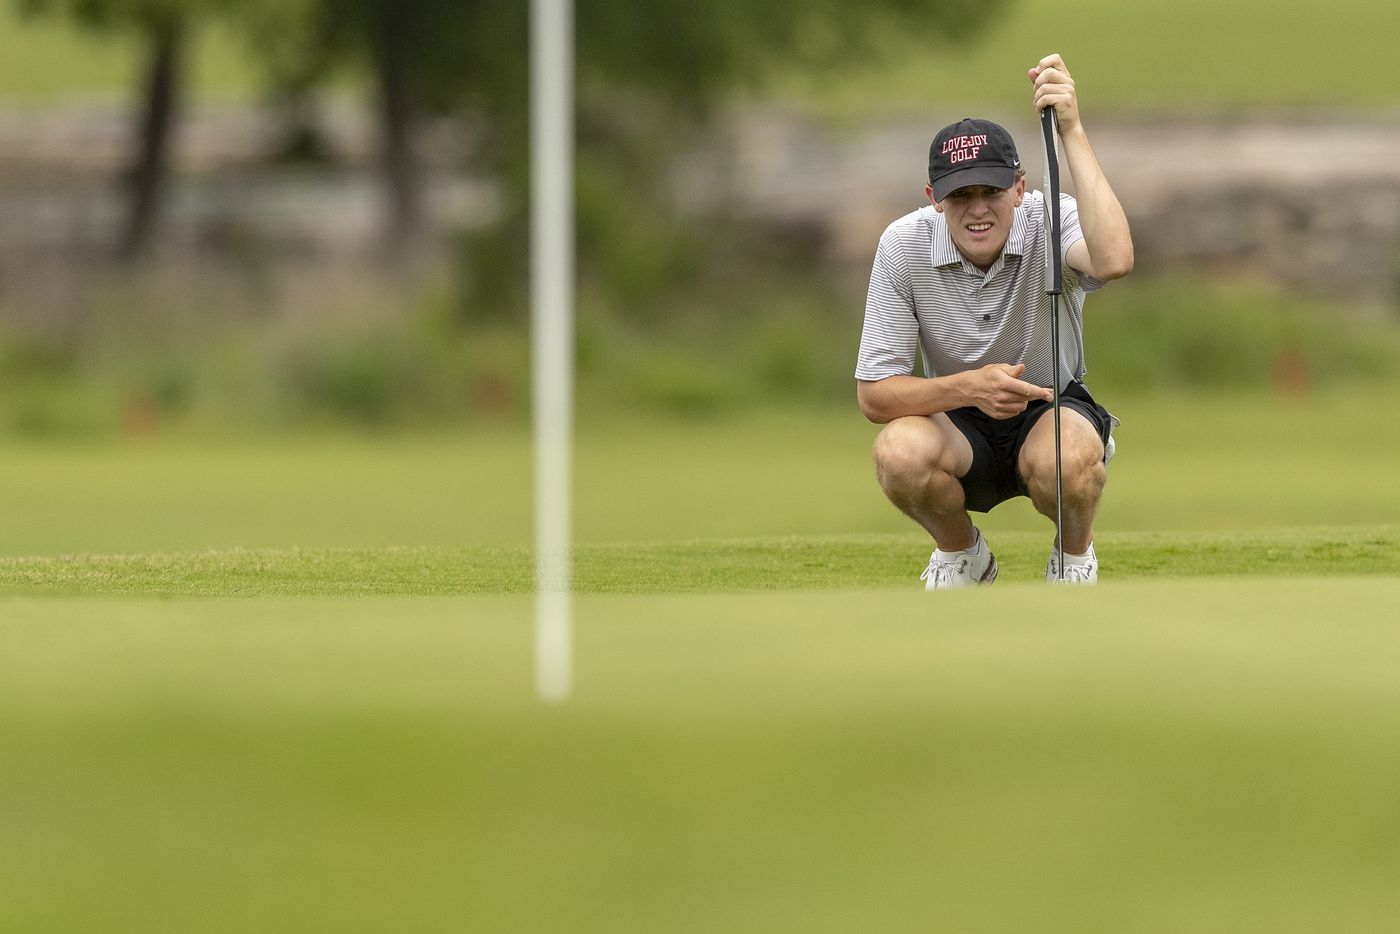 Lucas LovejoyÕs Jay Pabin studies his shot on the 9th green during round 1 of the UIL Class 5A boys golf tournament in Georgetown, Monday, May 17, 2021. (Stephen Spillman/Special Contributor)